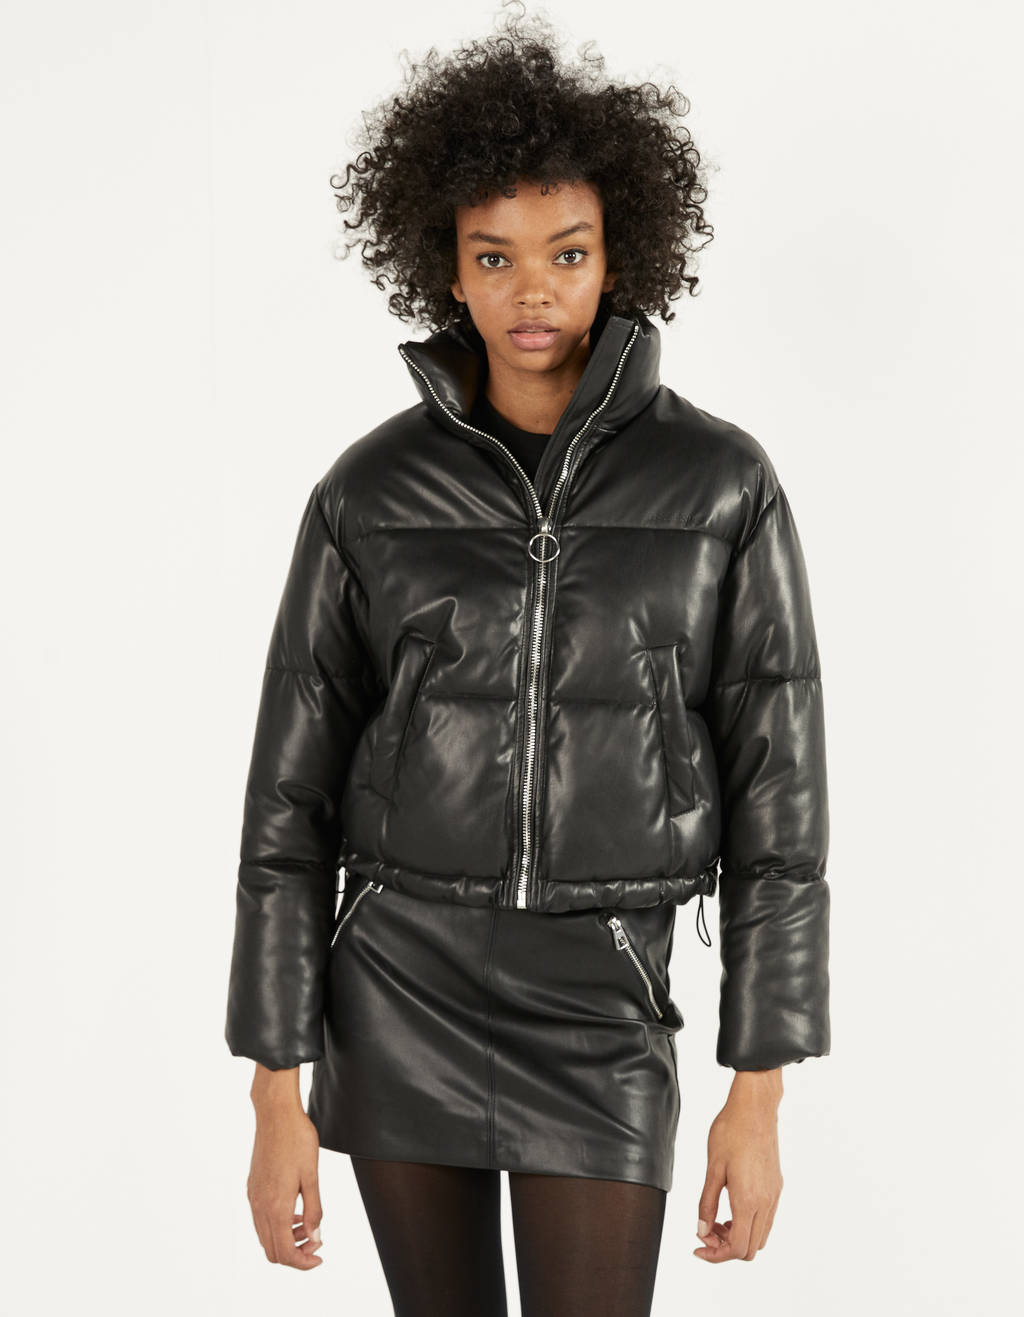 5c05ddf4bd Women's jackets - Fall 2019 | Bershka